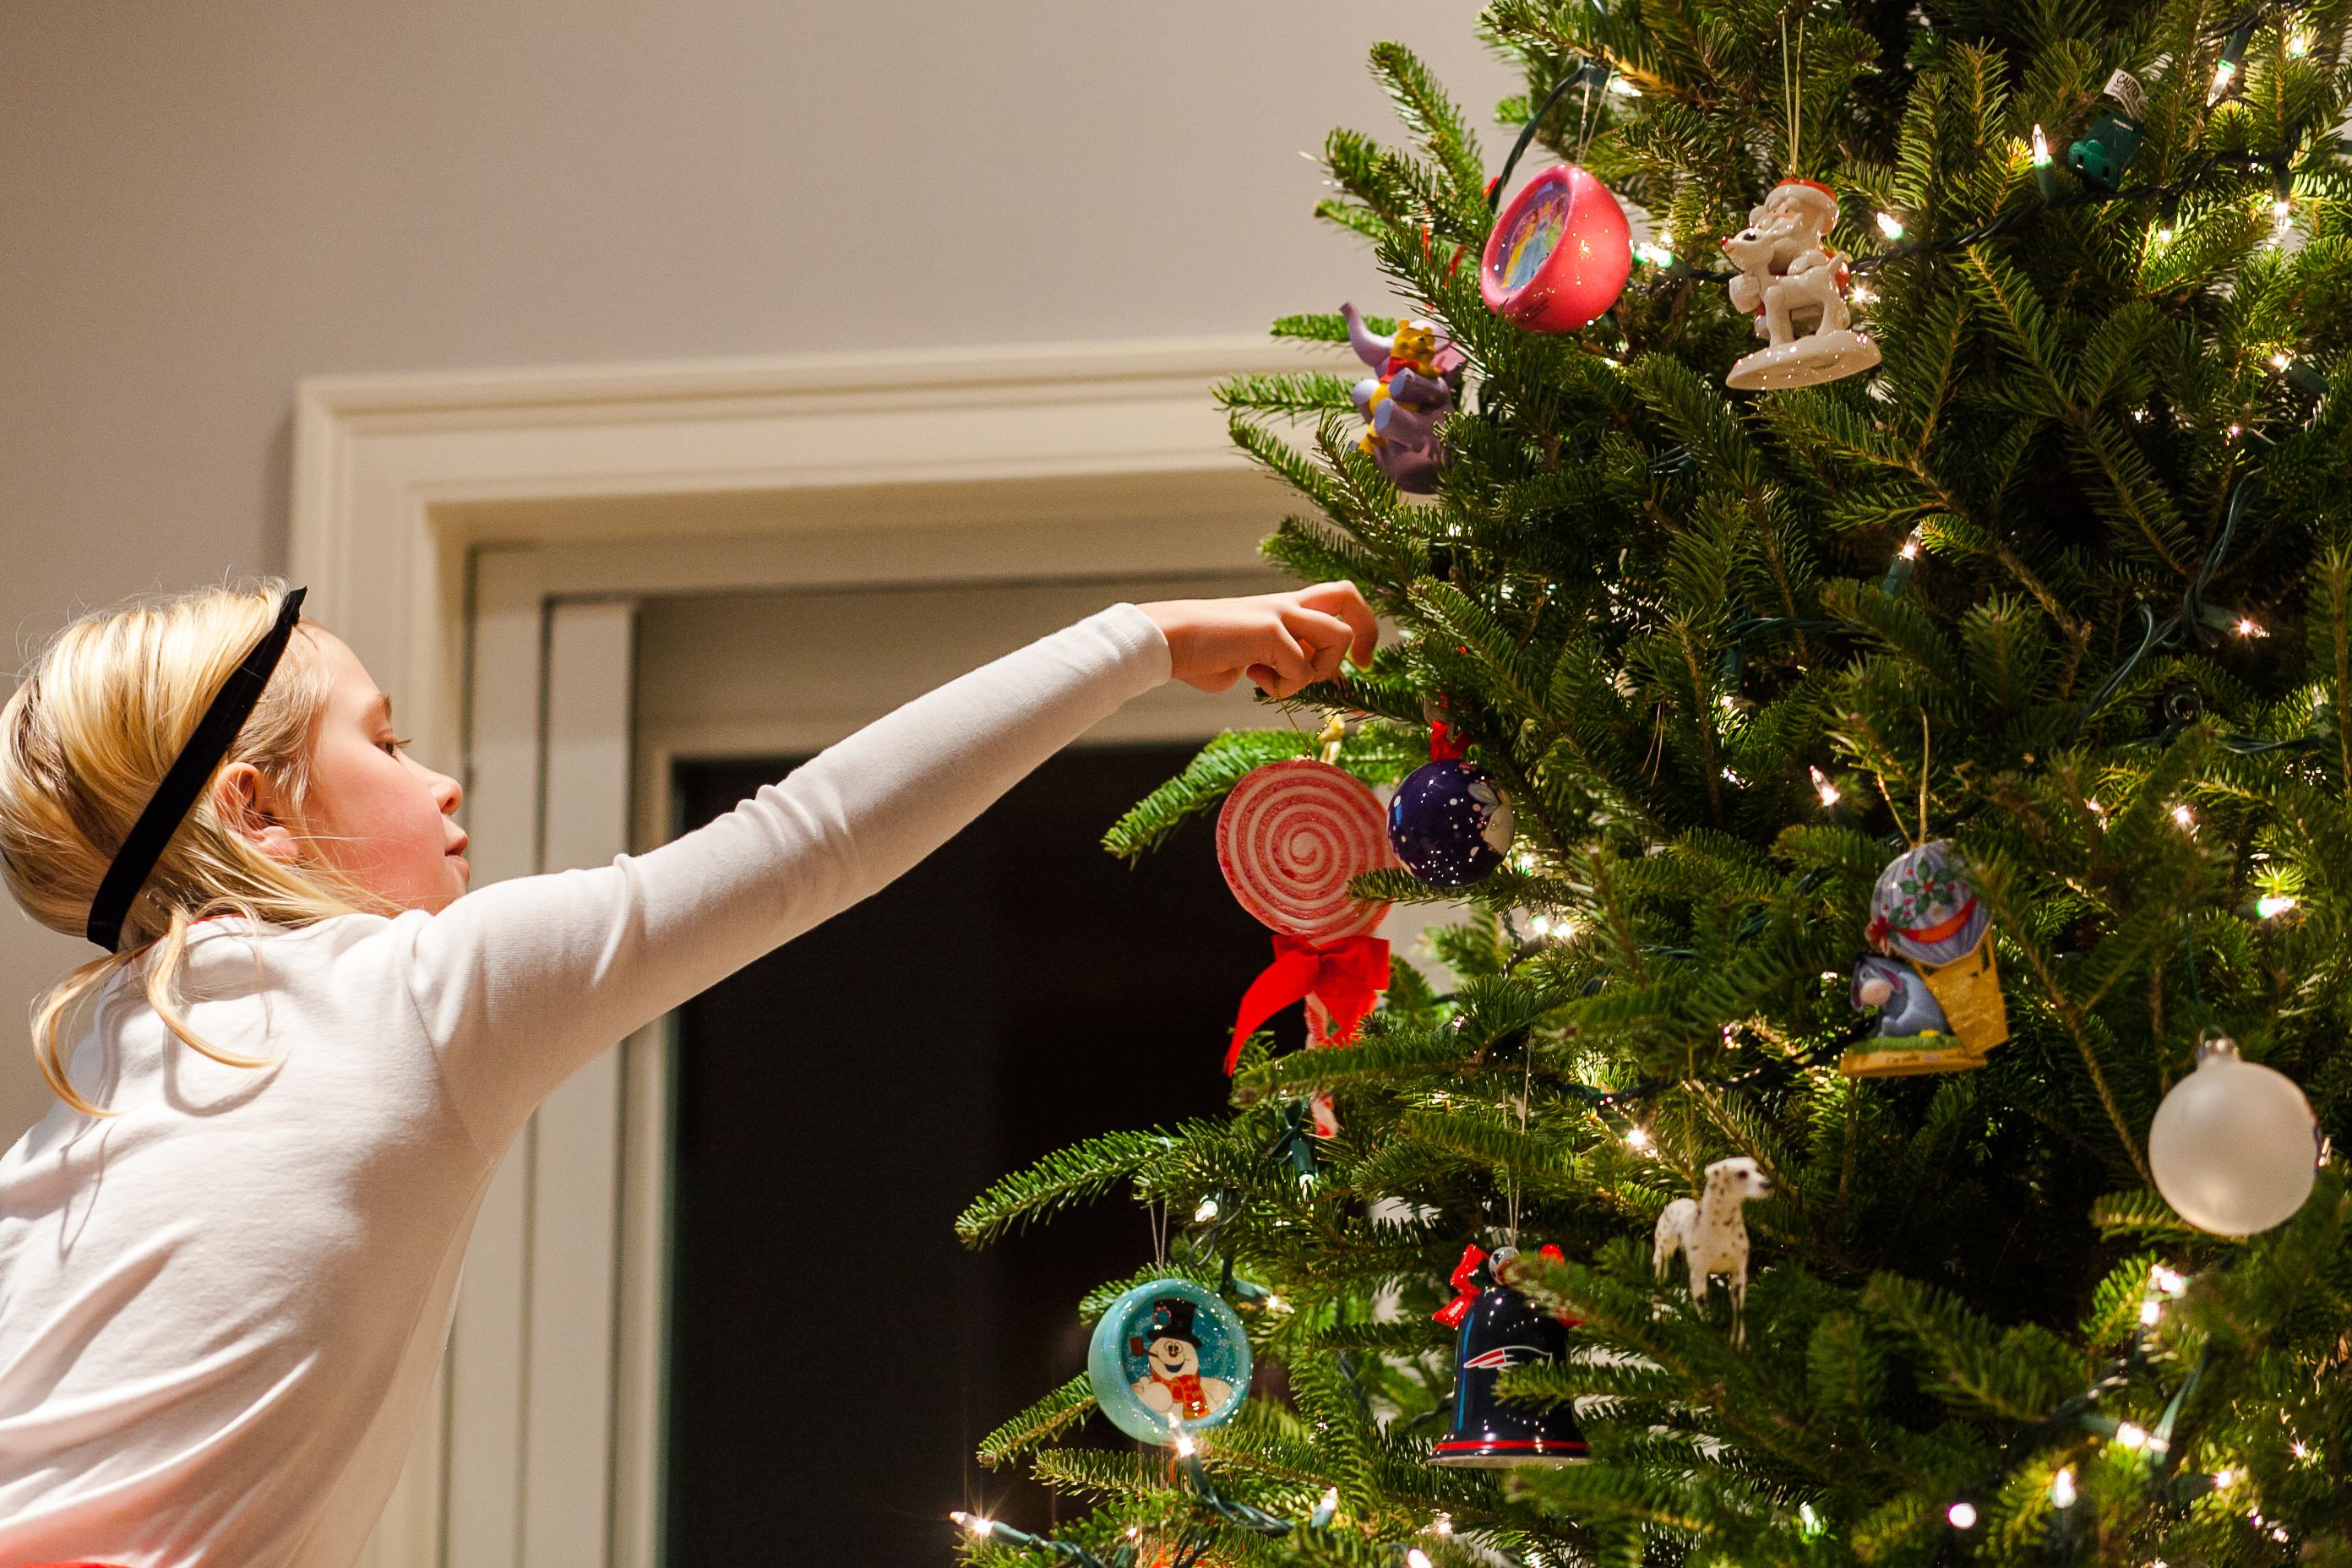 girl hanging red and white ornament on Christmas tree